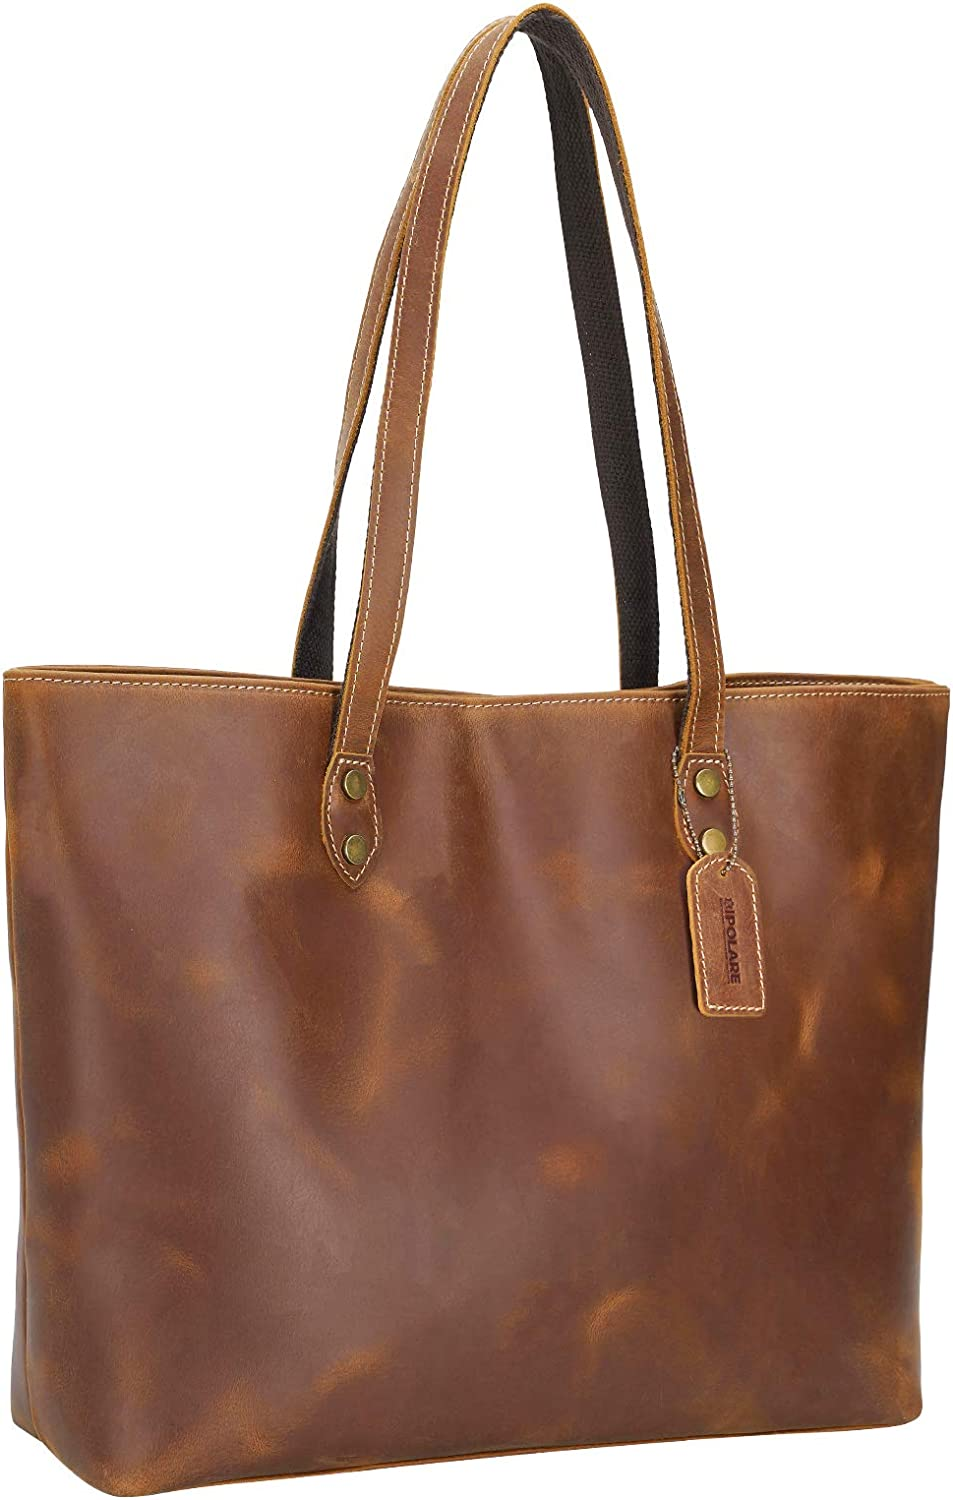 Polare Vintage Full Grain New Shipping Free Sales of SALE items from new works Leather Laptop W Tote for Shoulder Bag